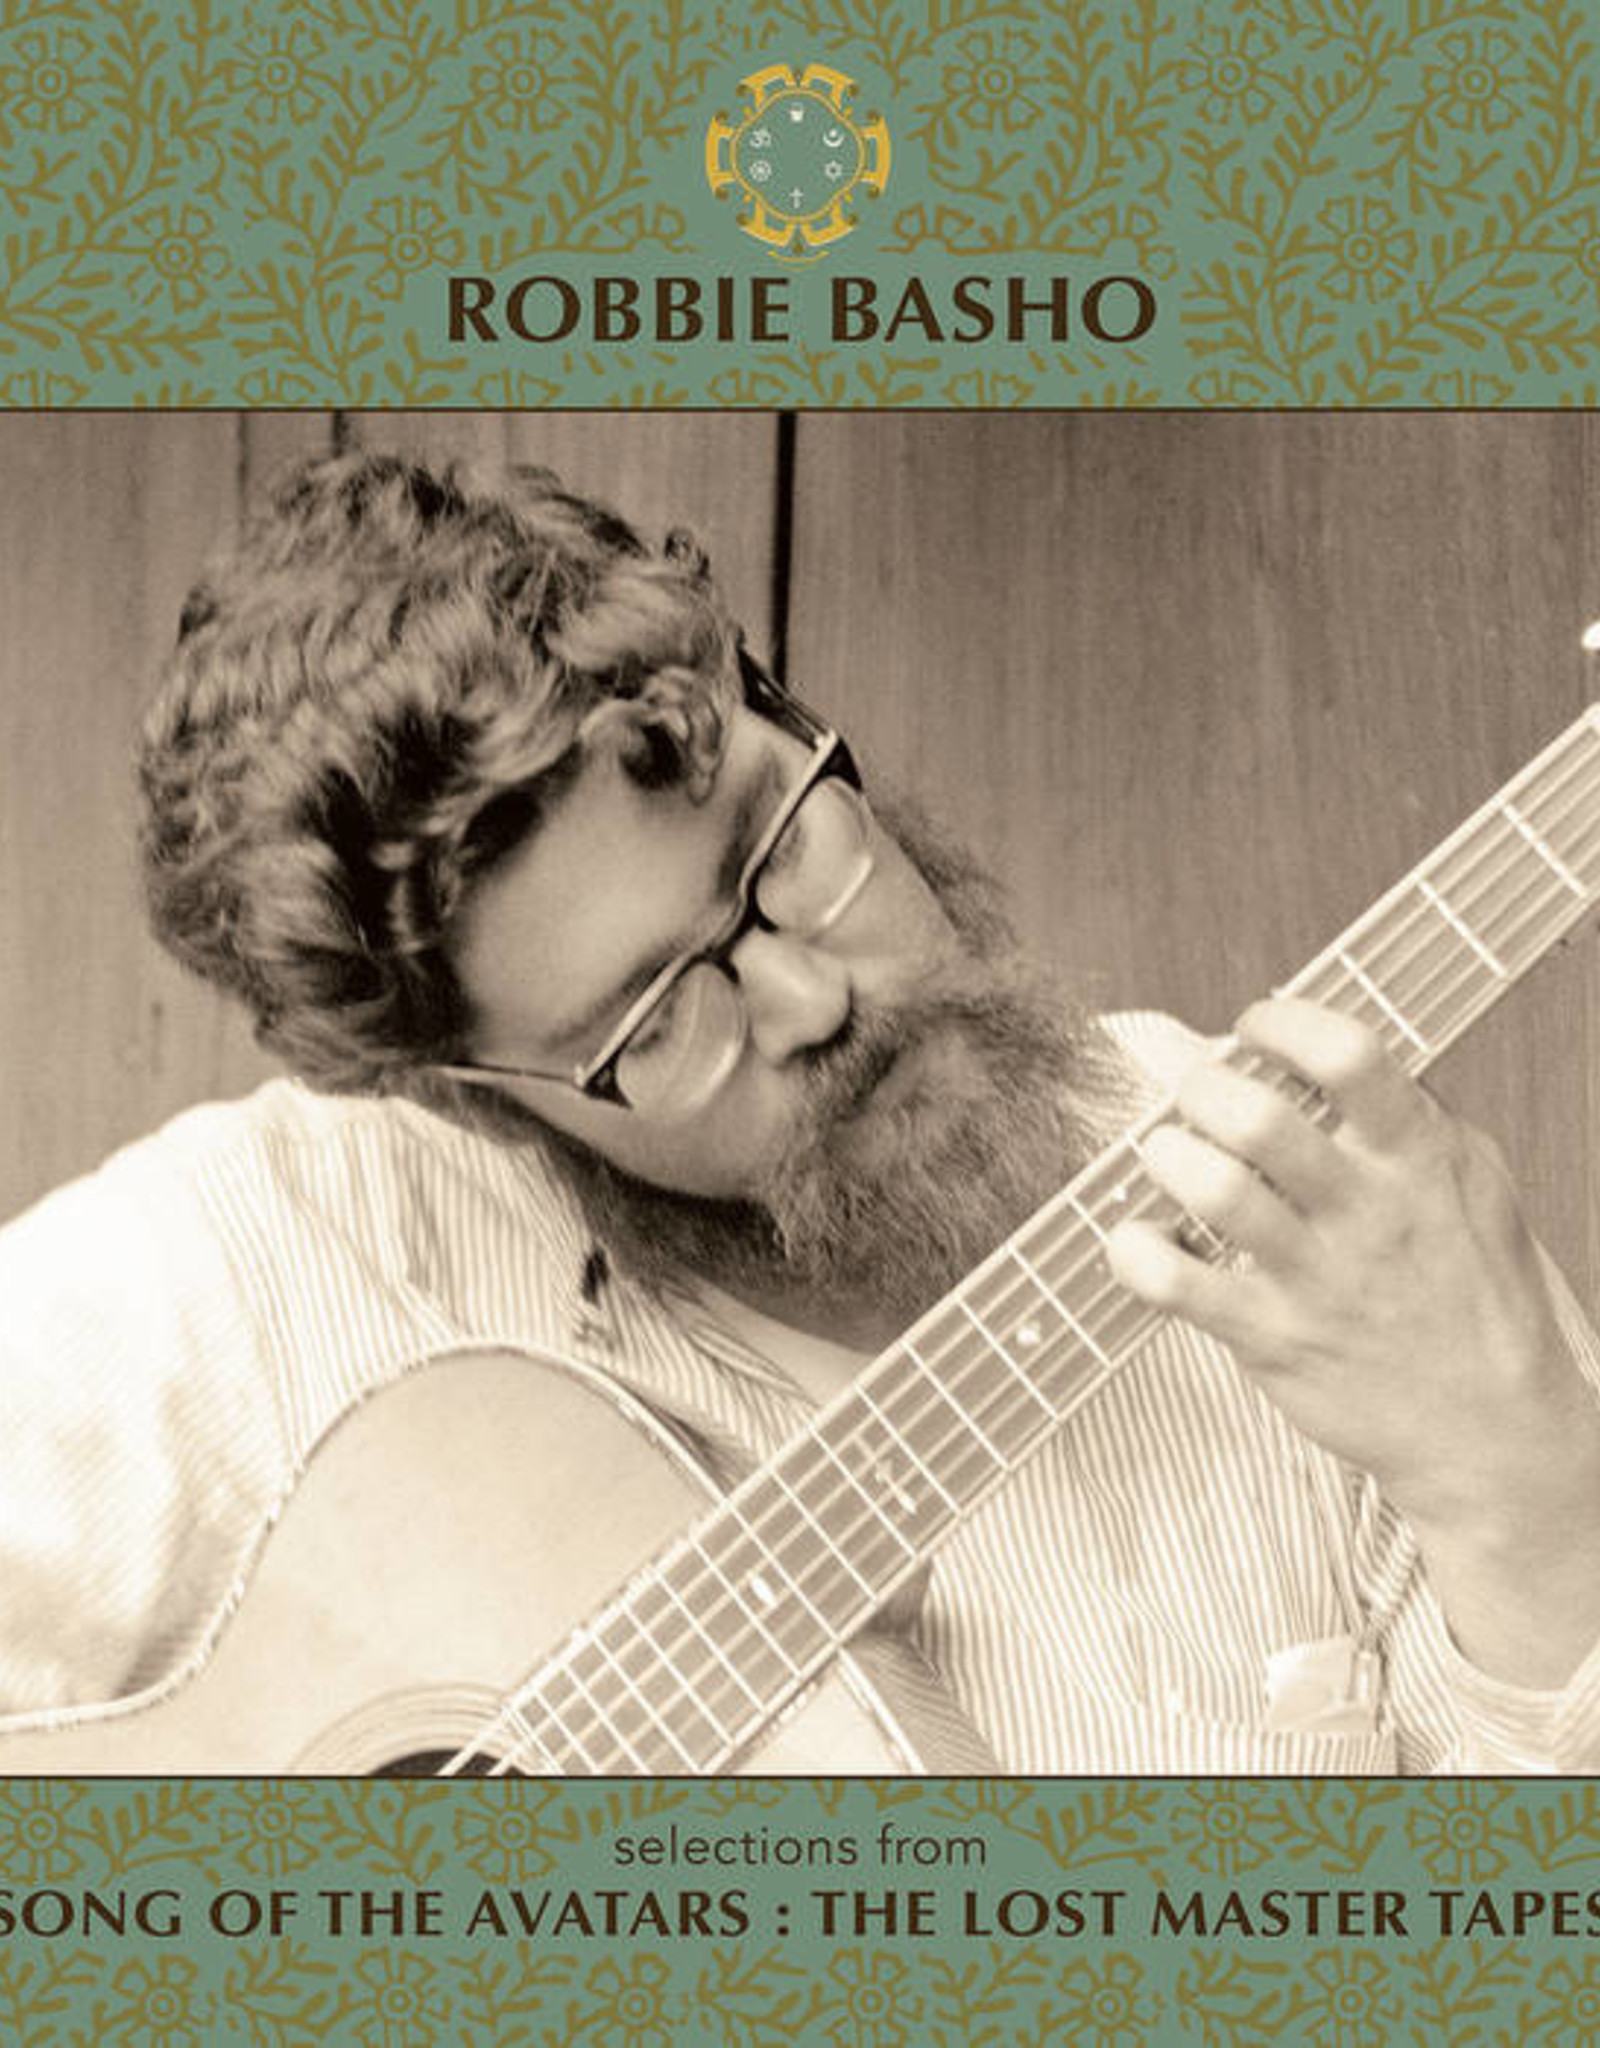 Robbie Basho - Selections From Song Of The Avatars: The Lost Master Tapes (UNSEEN Photographs) (RSD 2020)